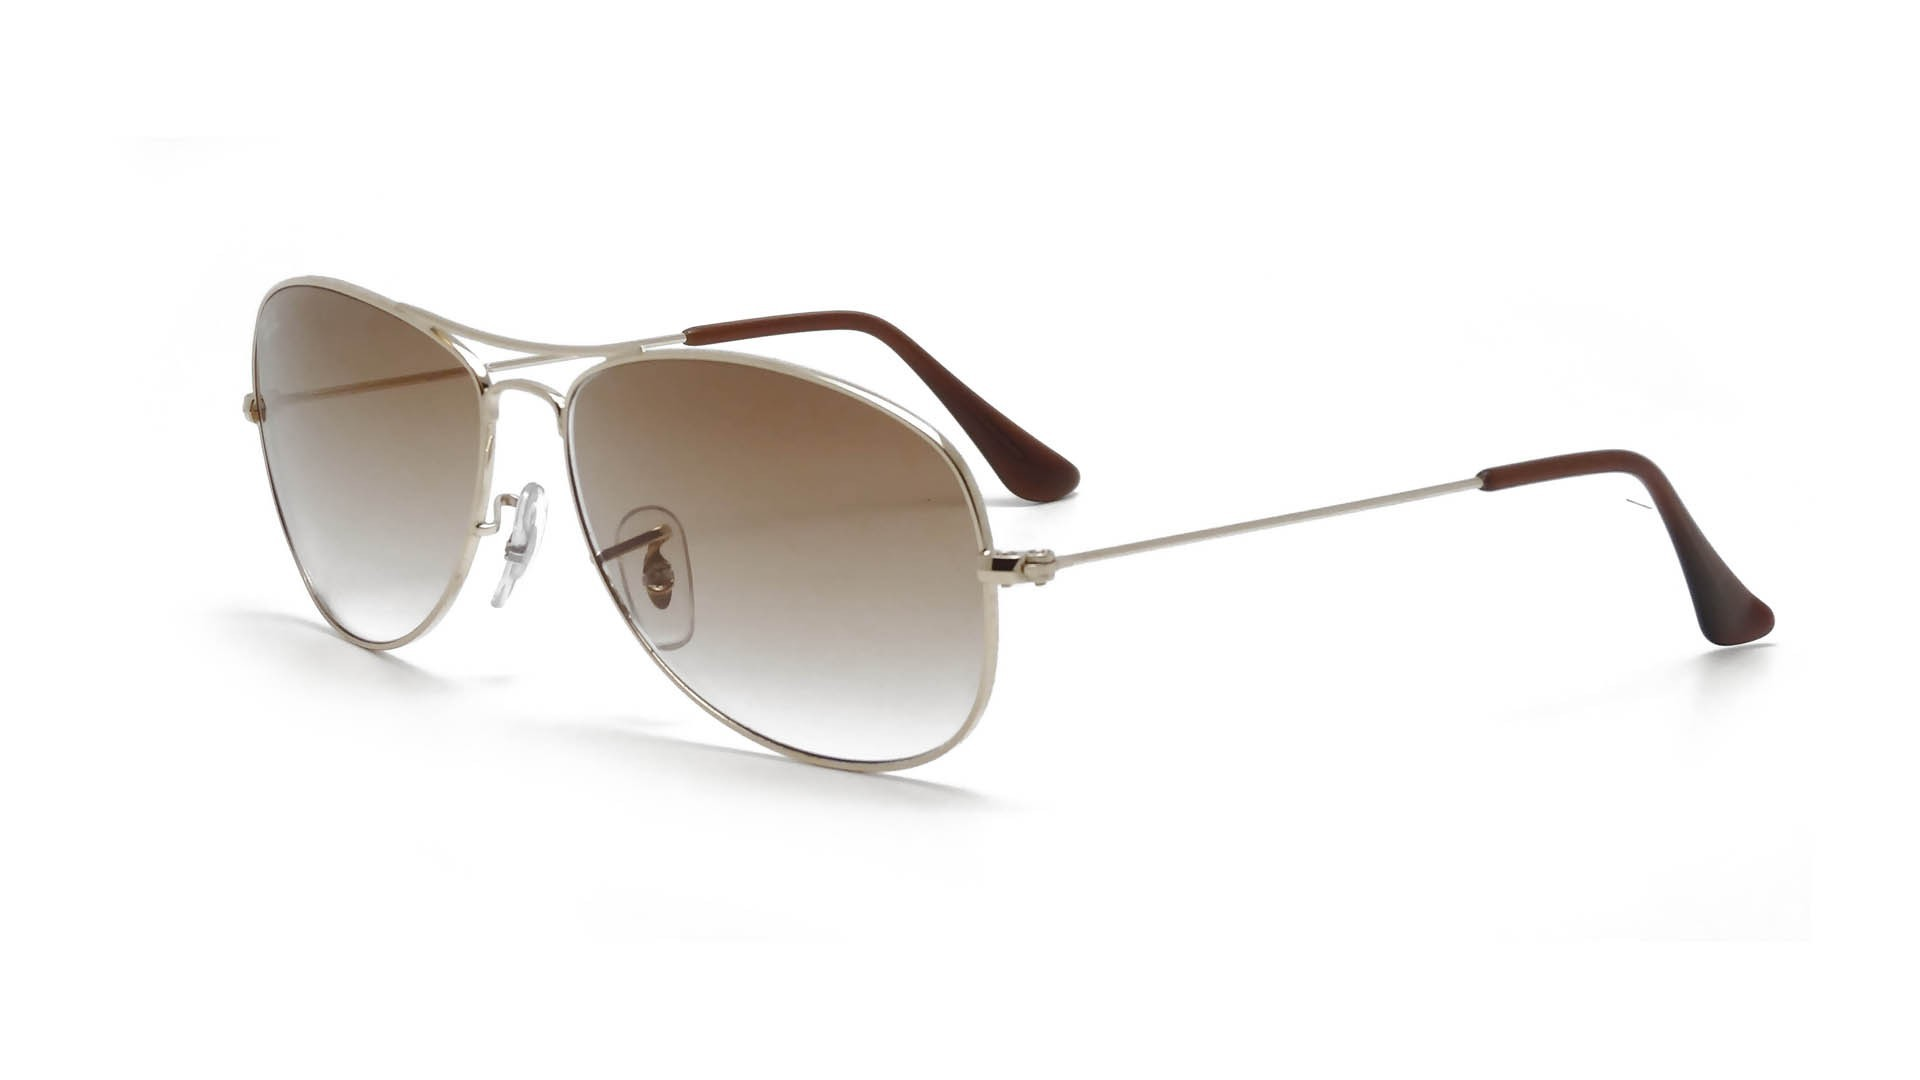 08e31706bbaca Sunglasses Ray-Ban Cockpit Gold RB3362 001 51 56-14 Large Gradient